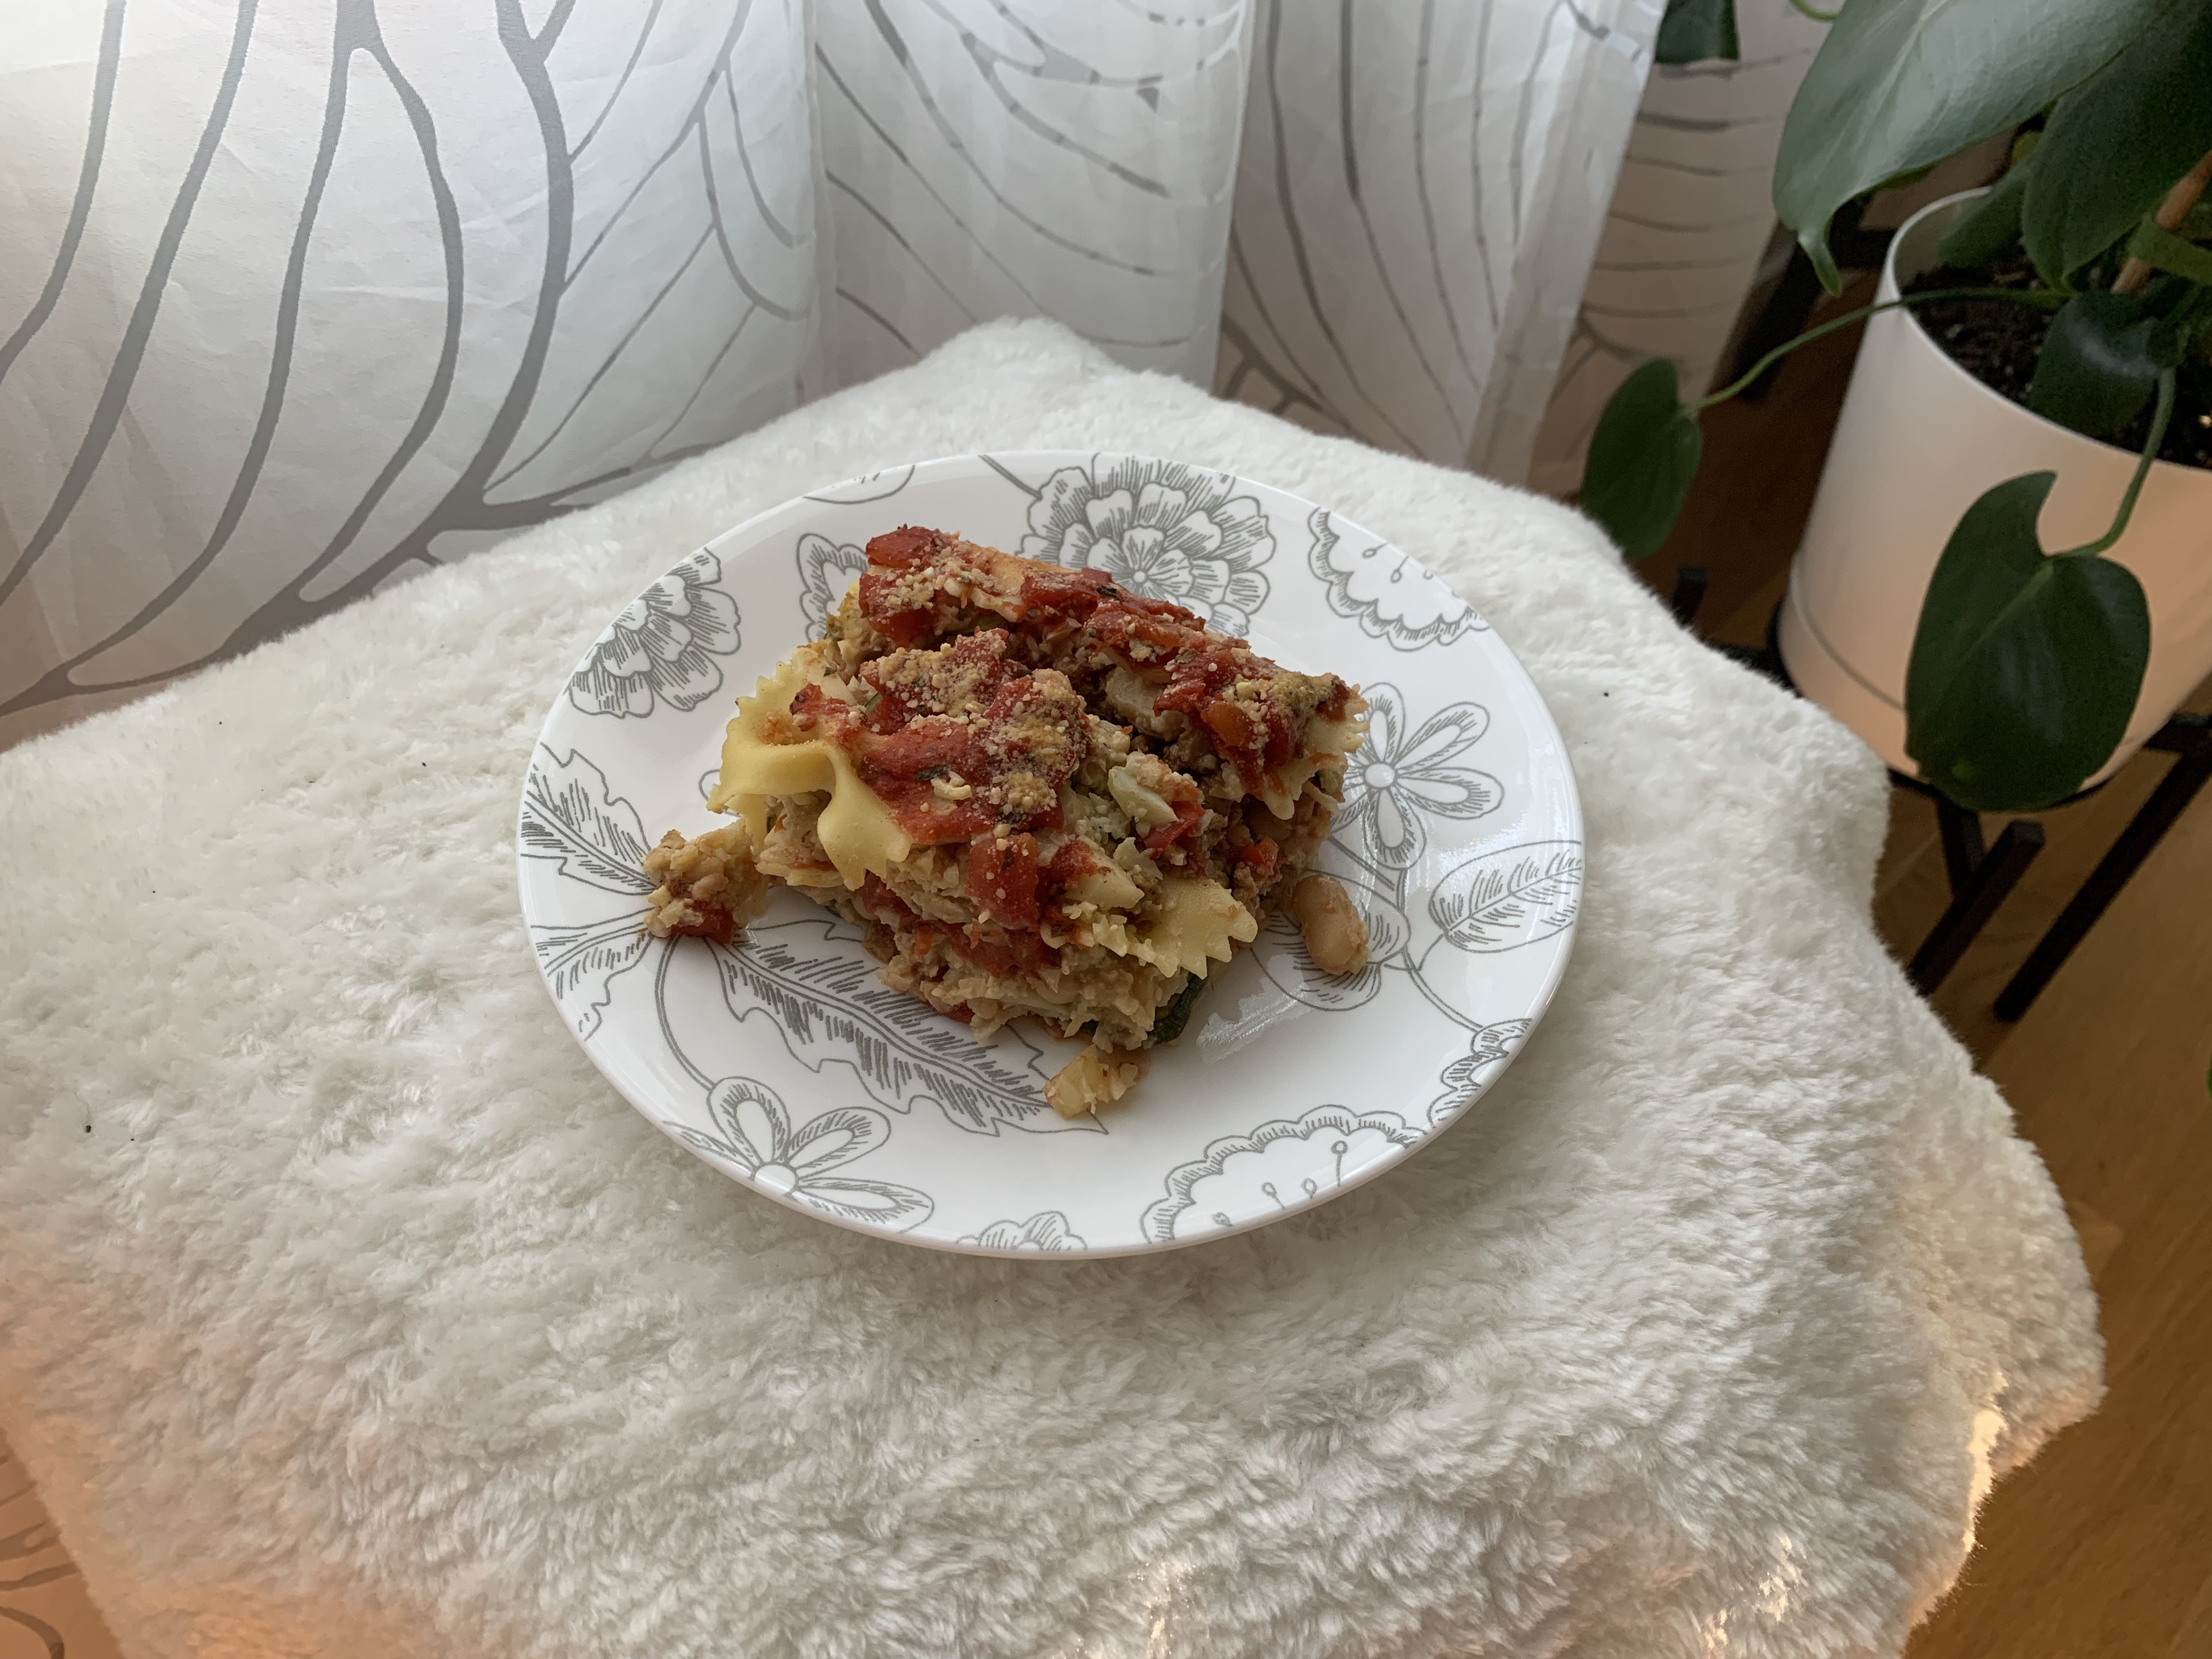 A serving of lasagna sits on a plate on a stool in front of a plant and some curtains